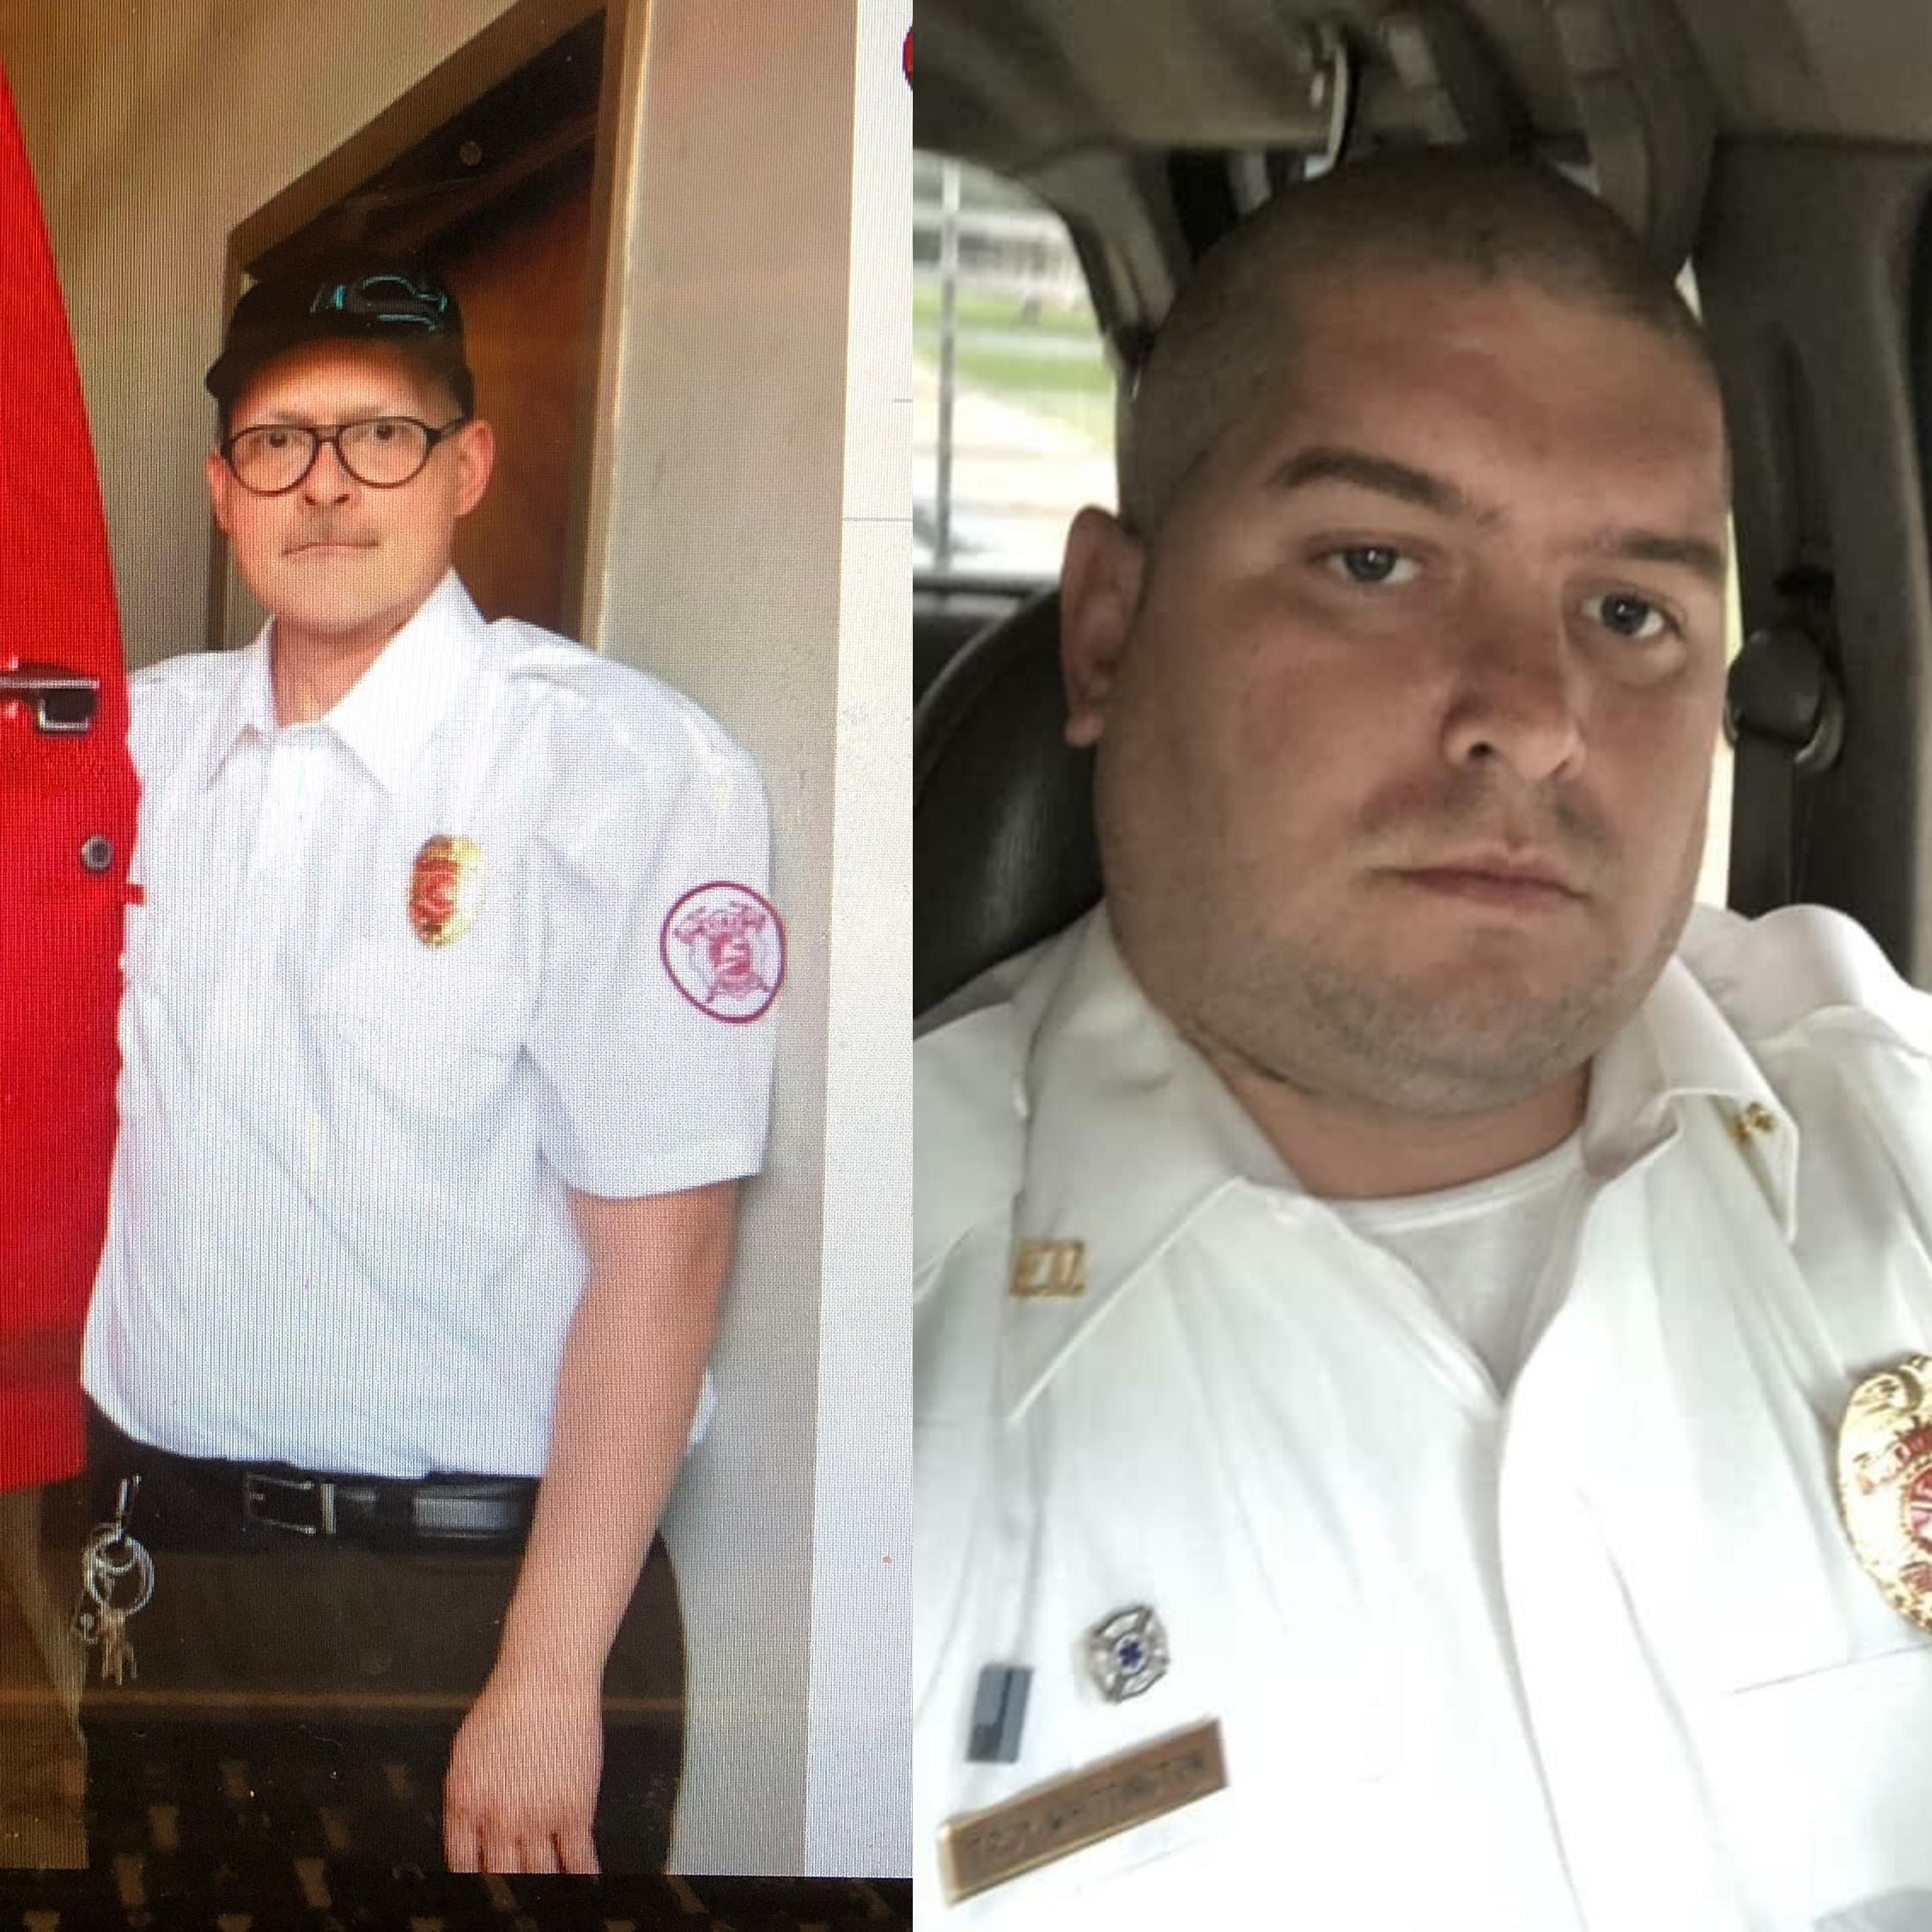 Slain firefighters: One was a cancer survivor, the other served his country.